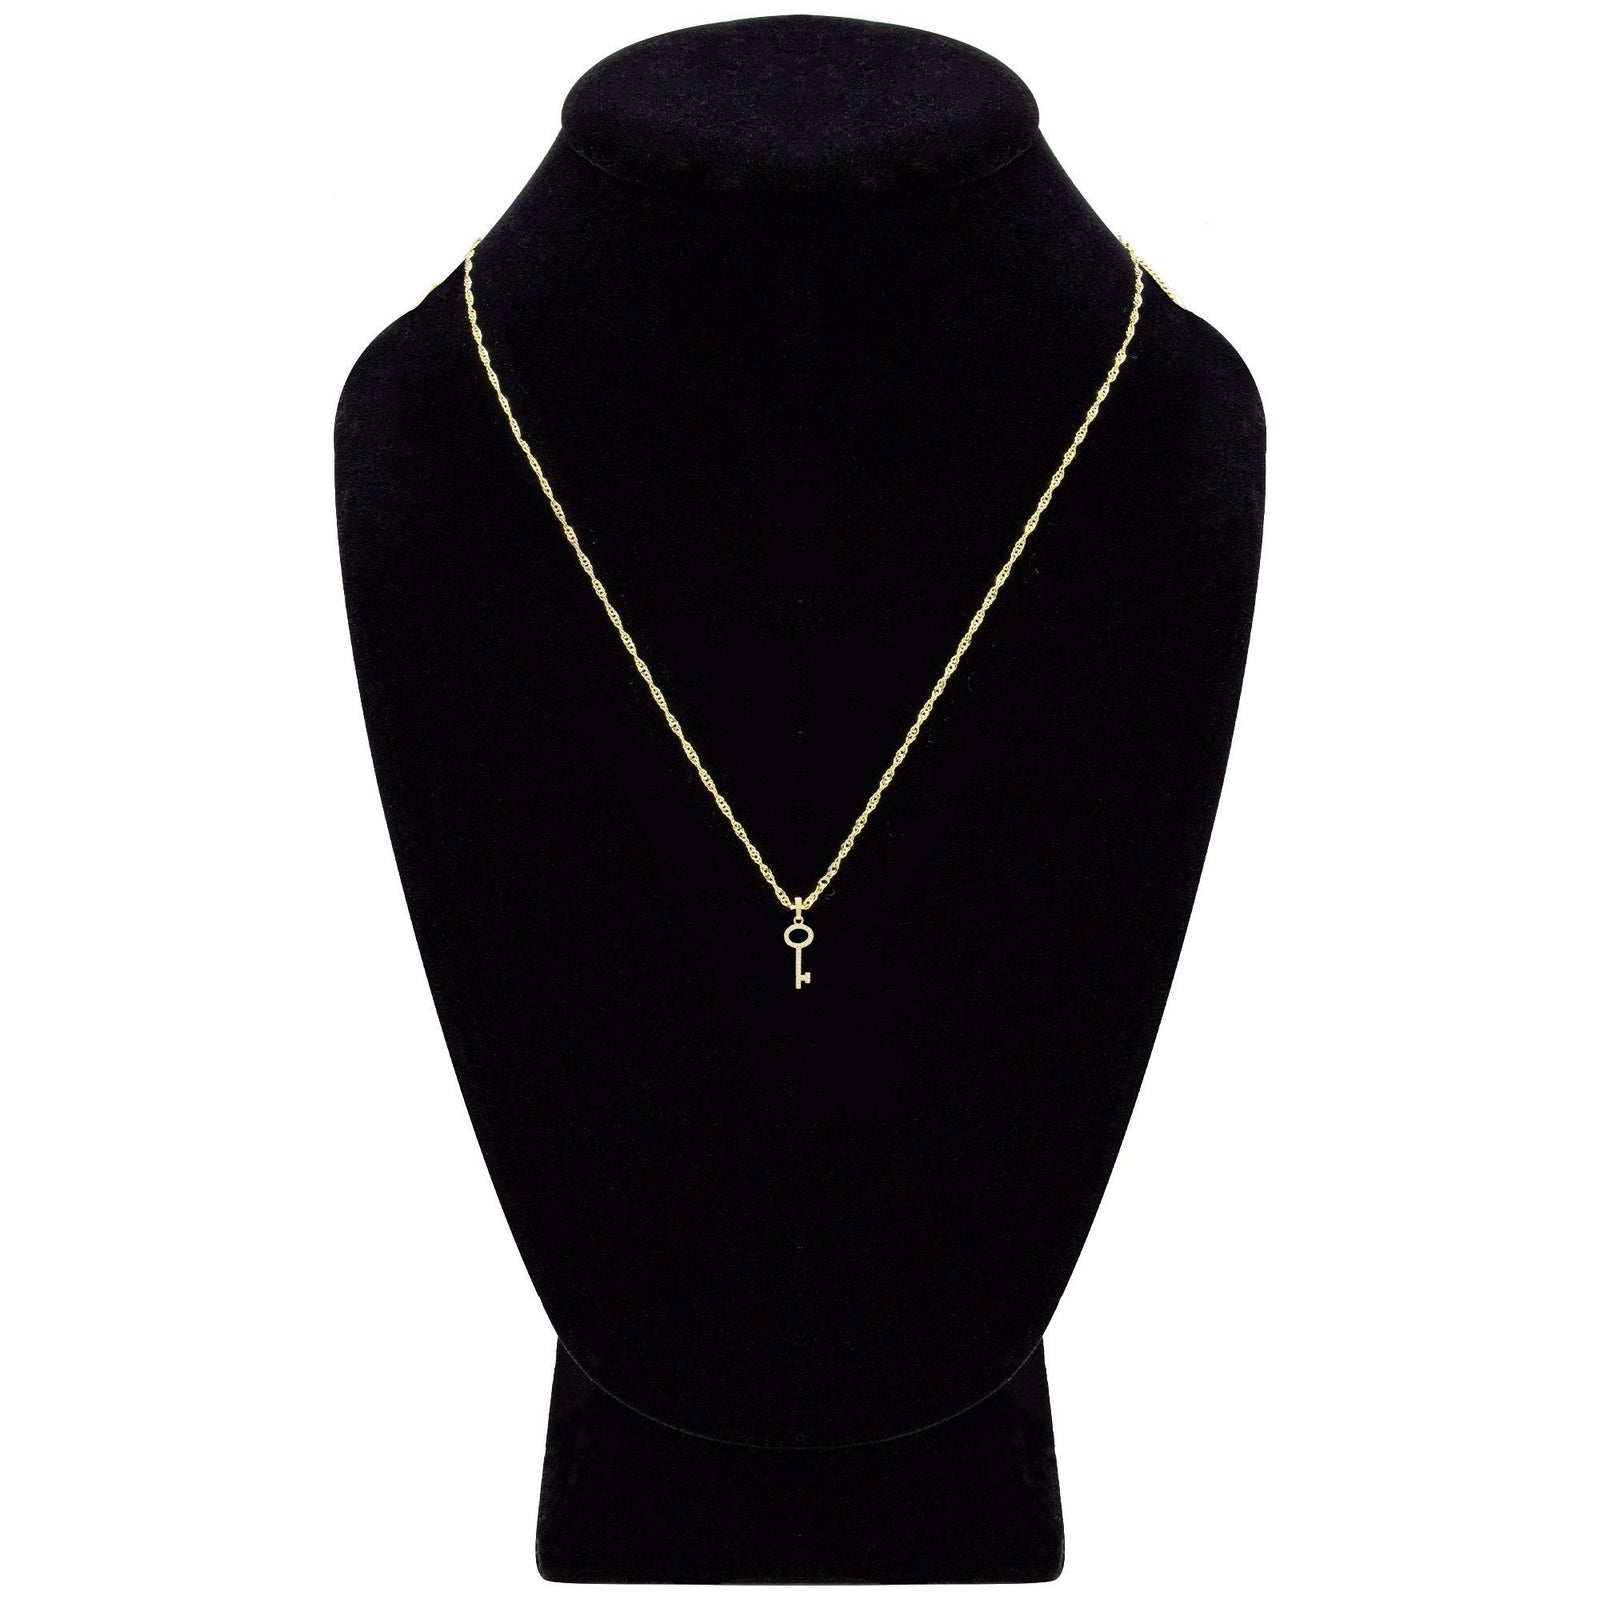 Key Cubic Zirconia Pendant With Necklace Set 14K Gold Filled